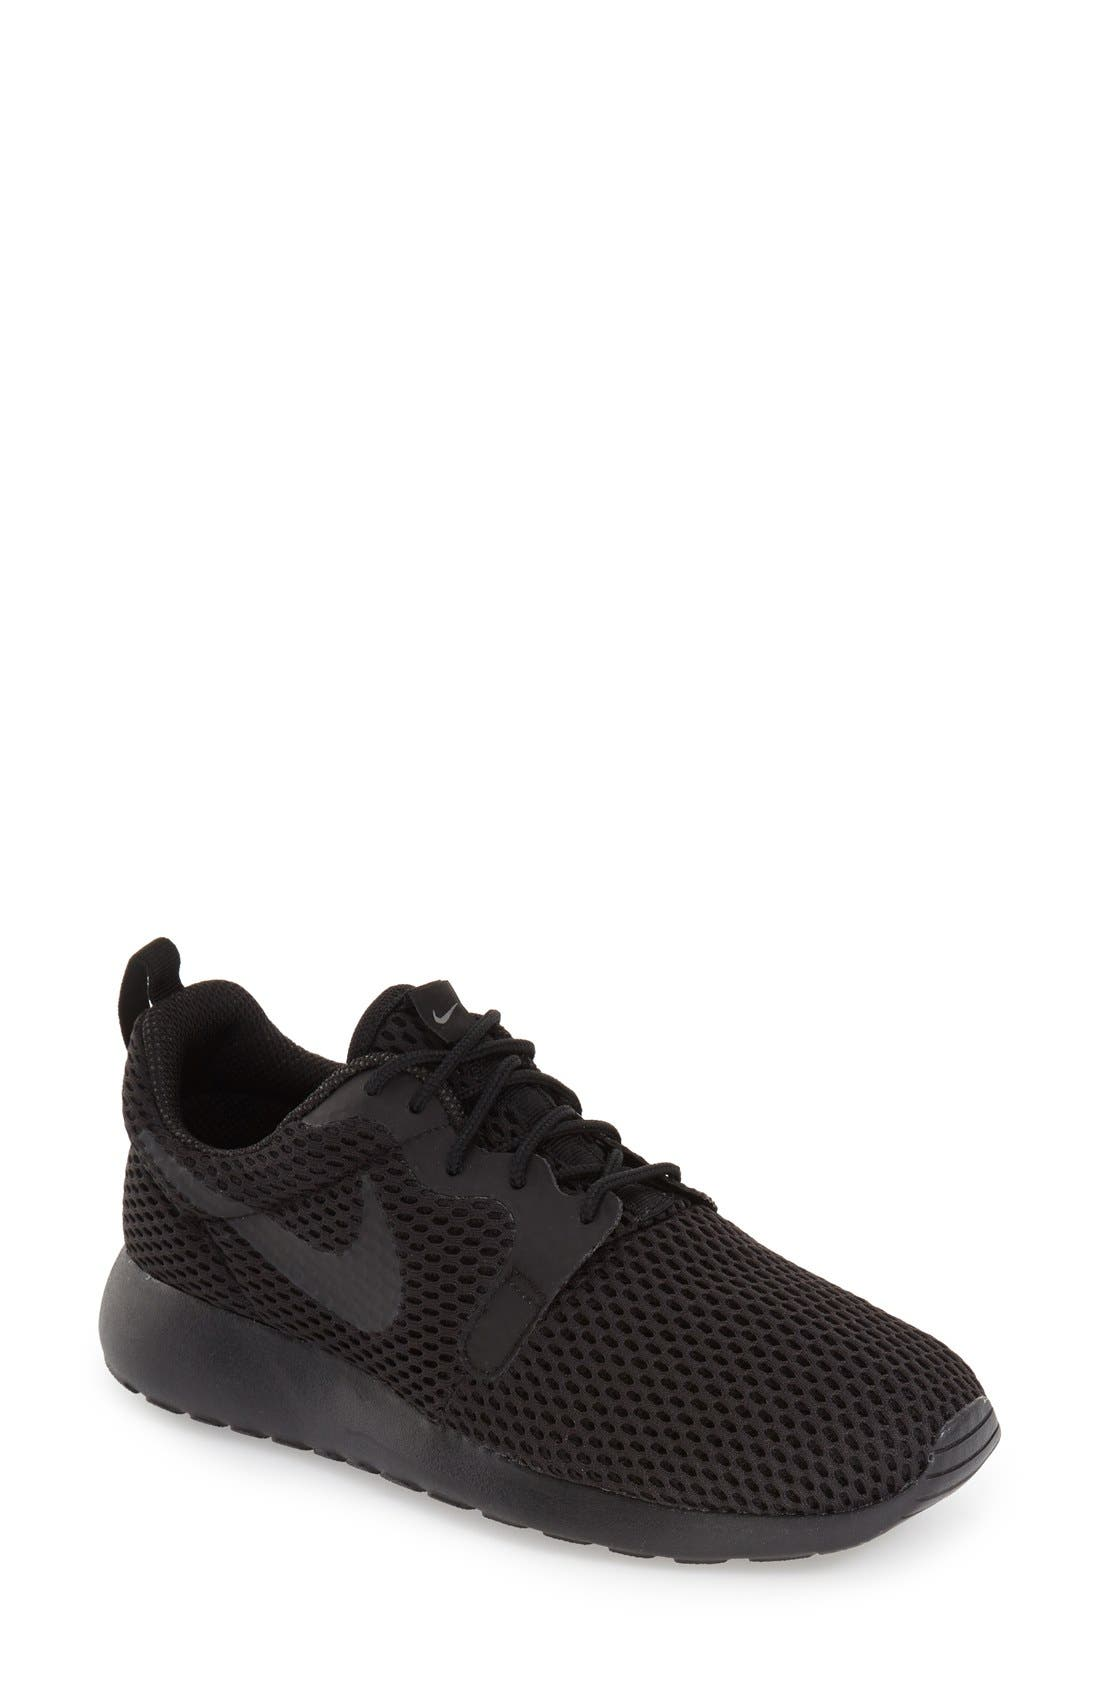 NIKE 'Roshe One Hyper Breathe' Sneaker, Main, color, 001